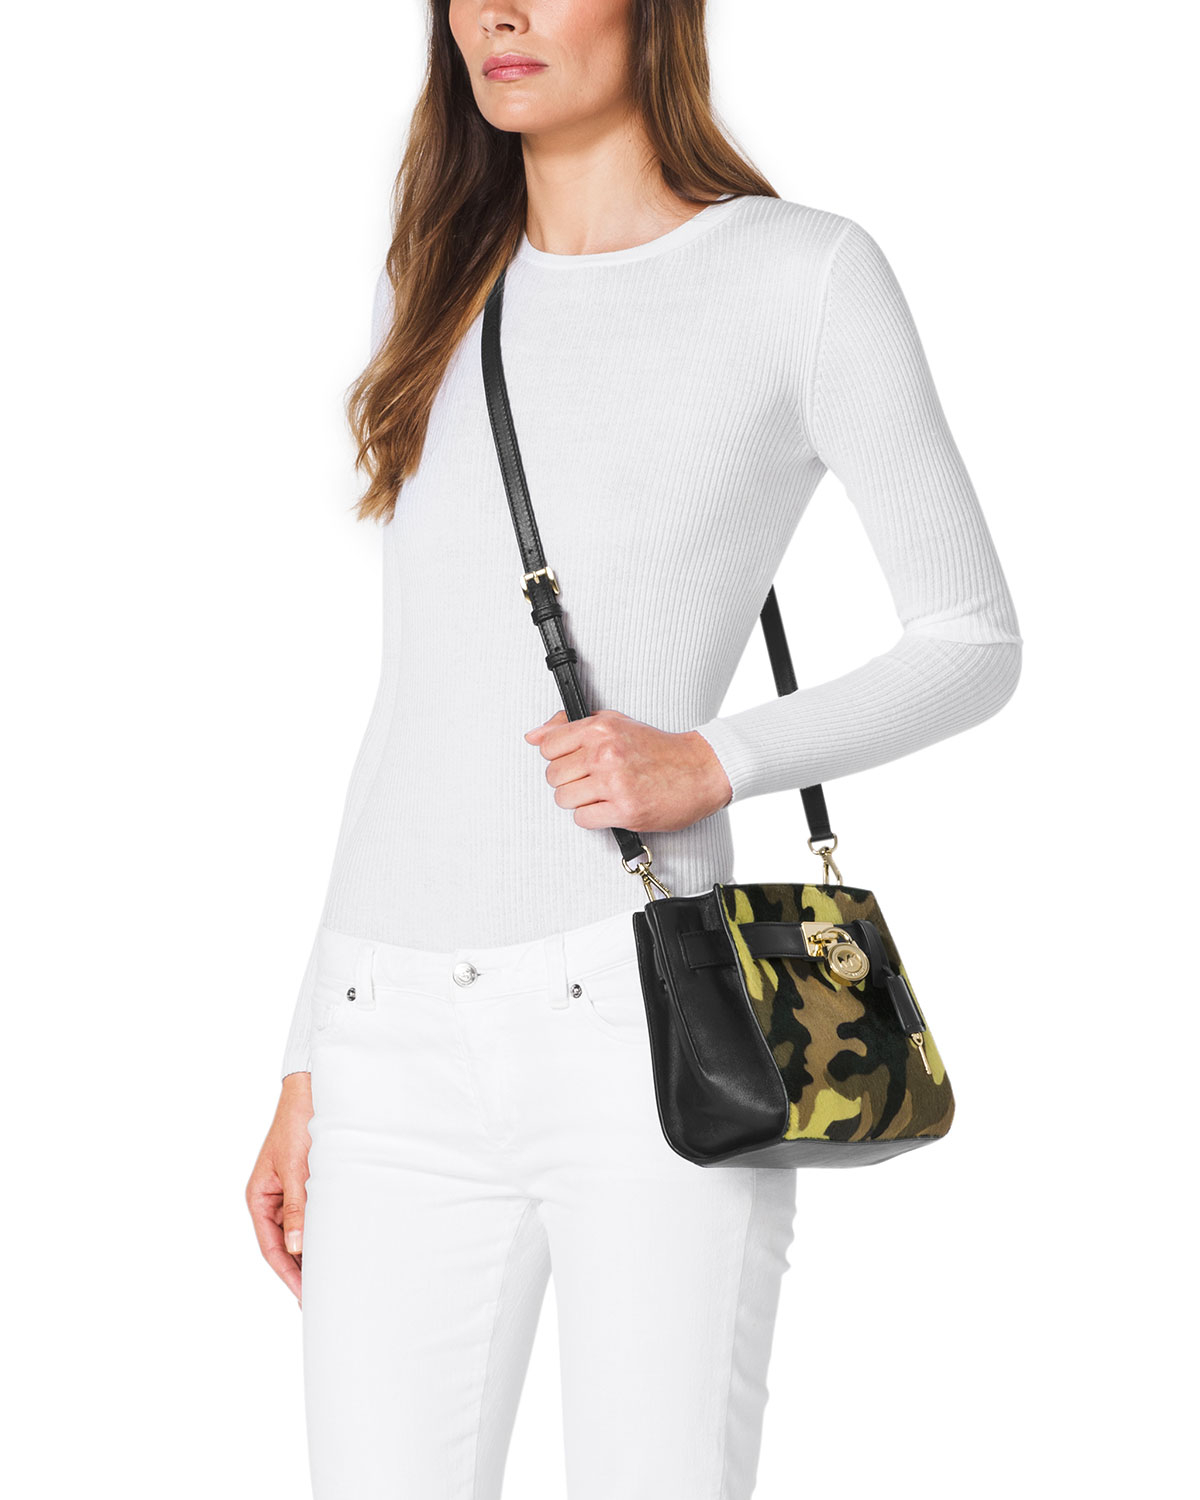 37ac79f69a Gallery. Previously sold at: Neiman Marcus · Women's Michael By Michael  Kors Hamilton